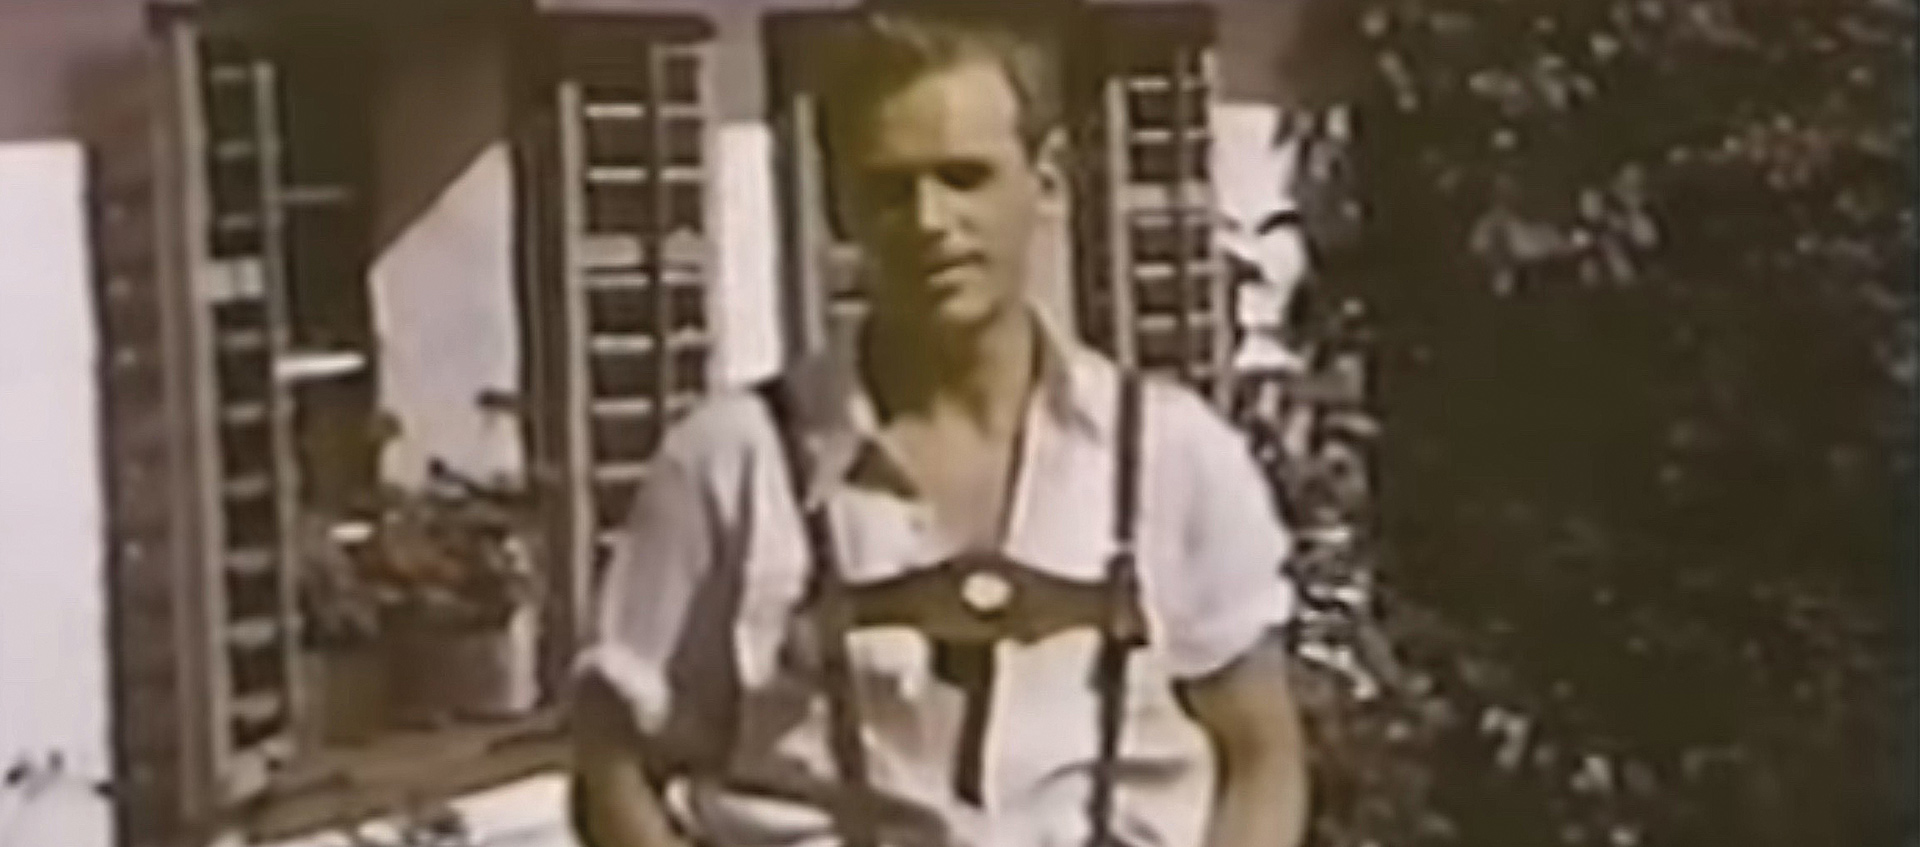 Hollywood Home Movies, image courtesy The Academy Film Archive